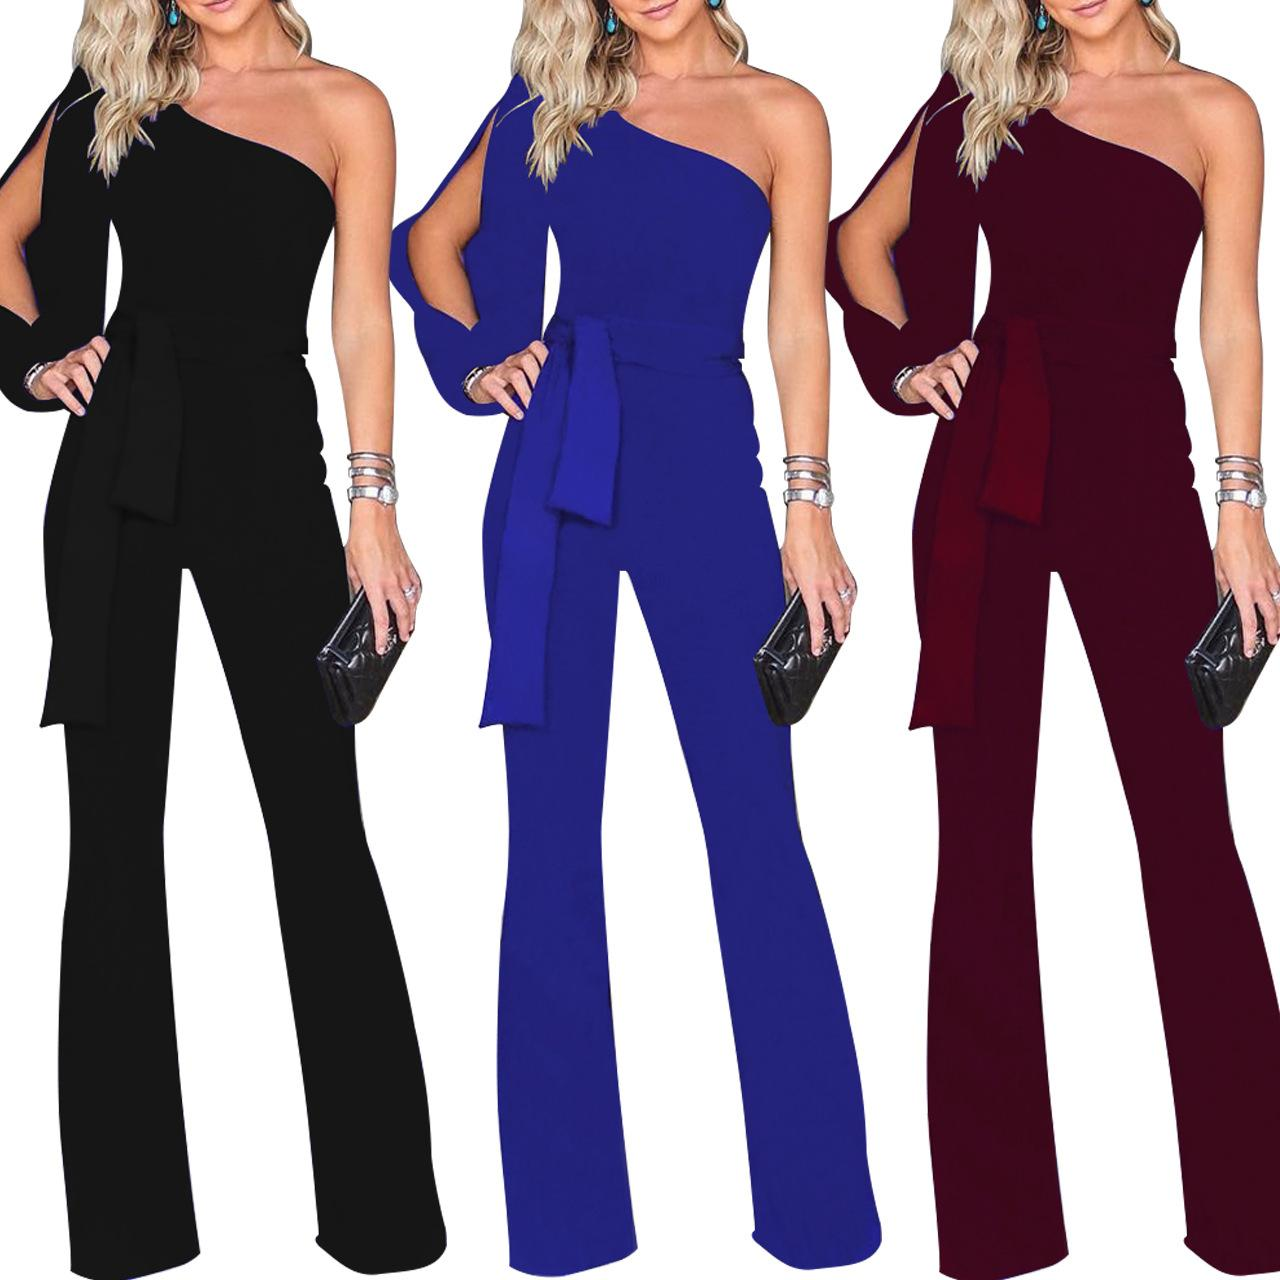 bde12c5f901 2019 European Fashion Sexy Rompers Women Jumpsuit One Shoulder Solid ...